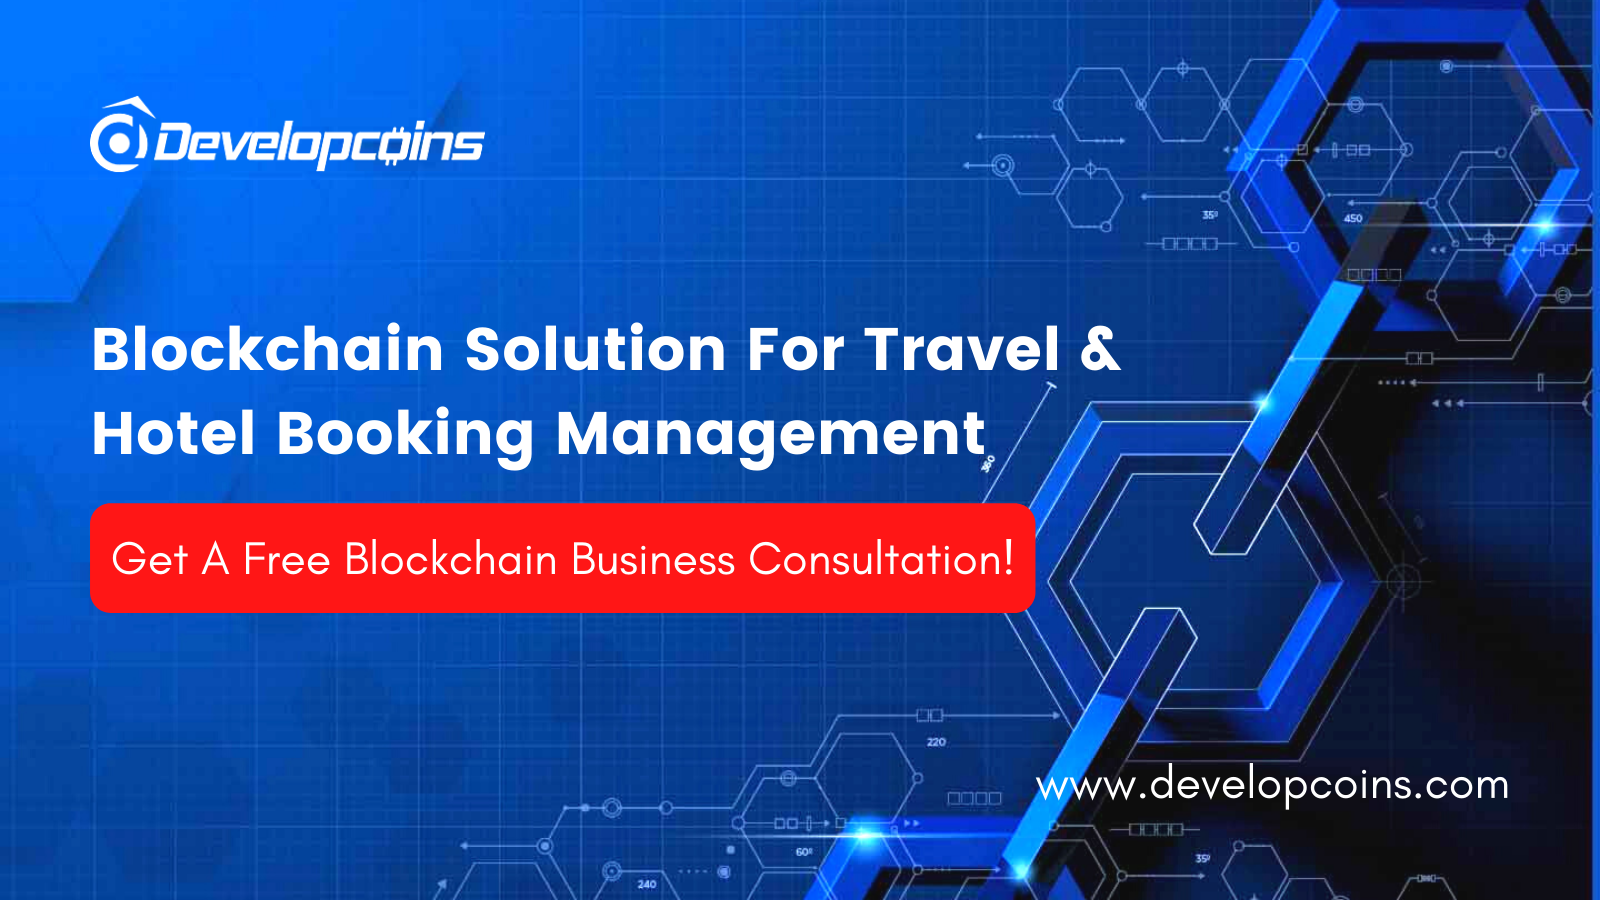 Blockchain Solution For Travel & Hotel Booking Management